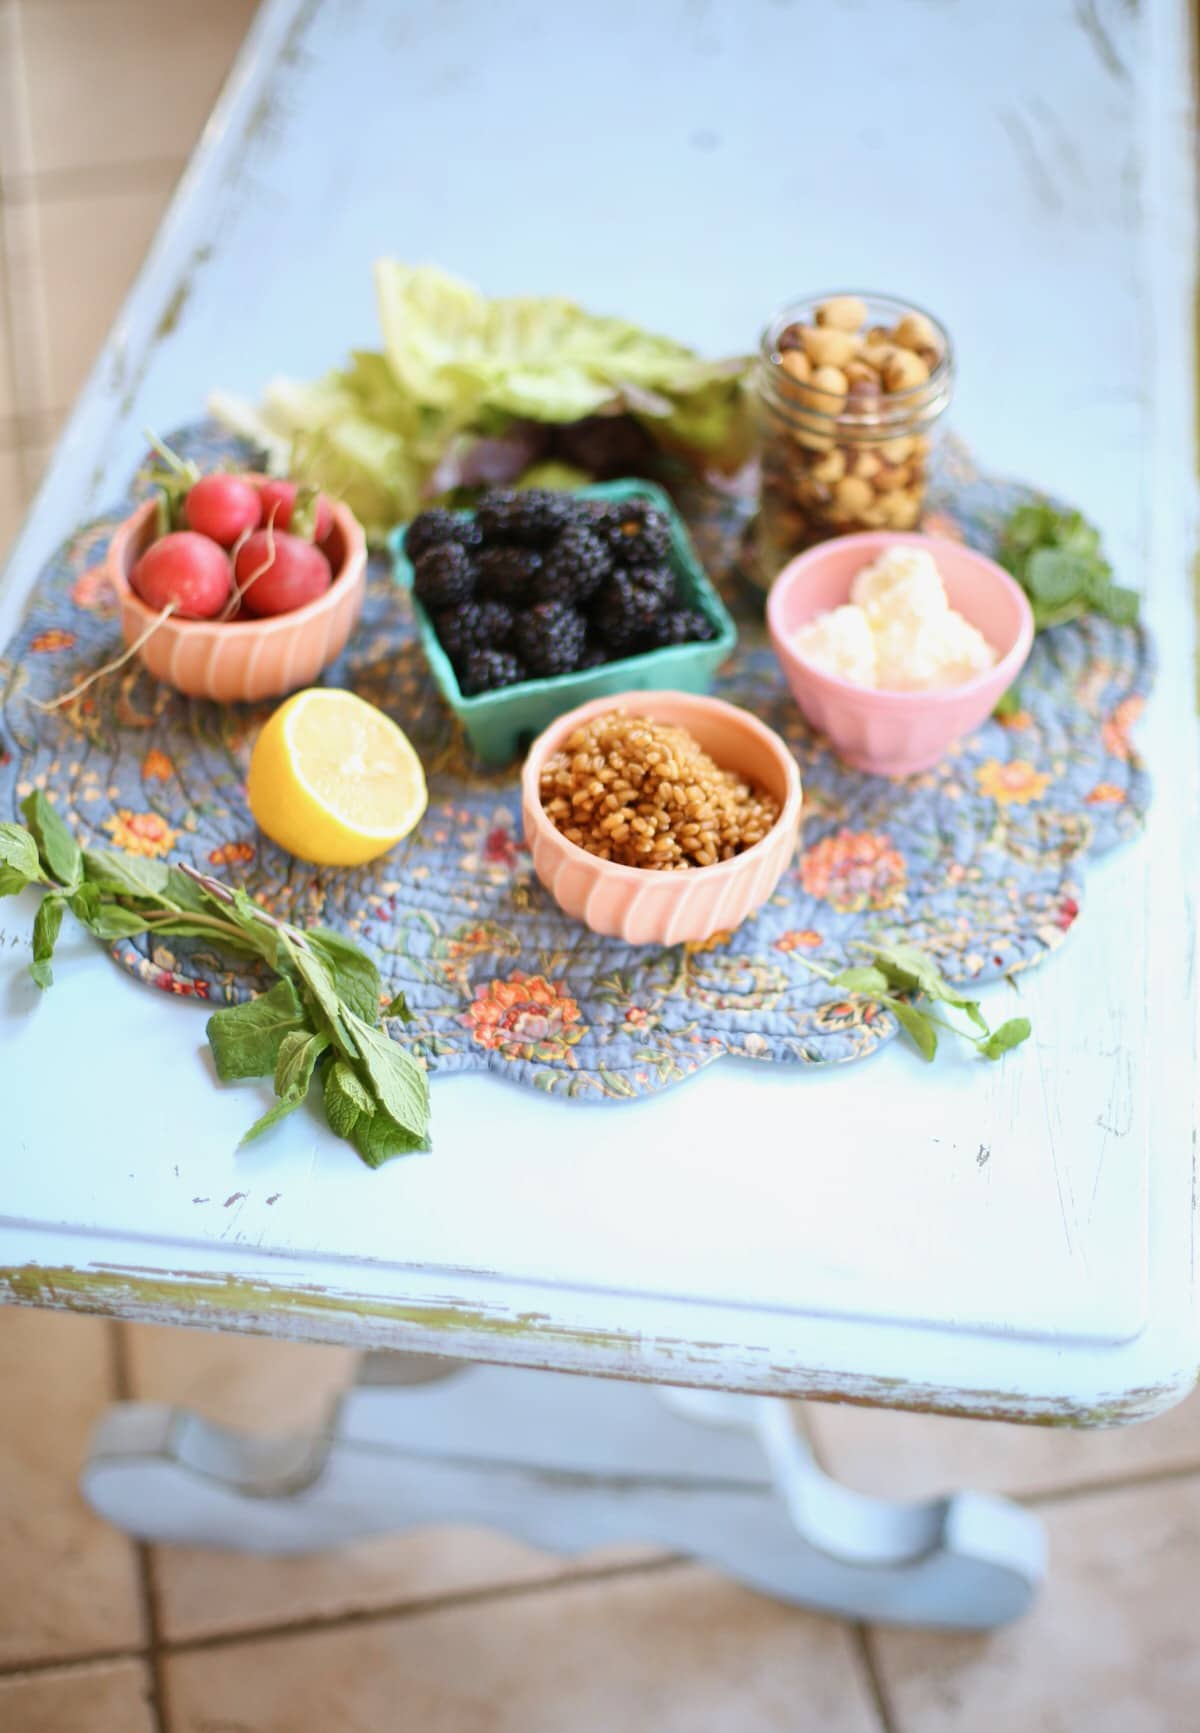 Ingredients for Blackberry Salad on a blue table: Grains, blackberries, hazelnuts, goat cheese, lemon, mint and radish in small bowls.